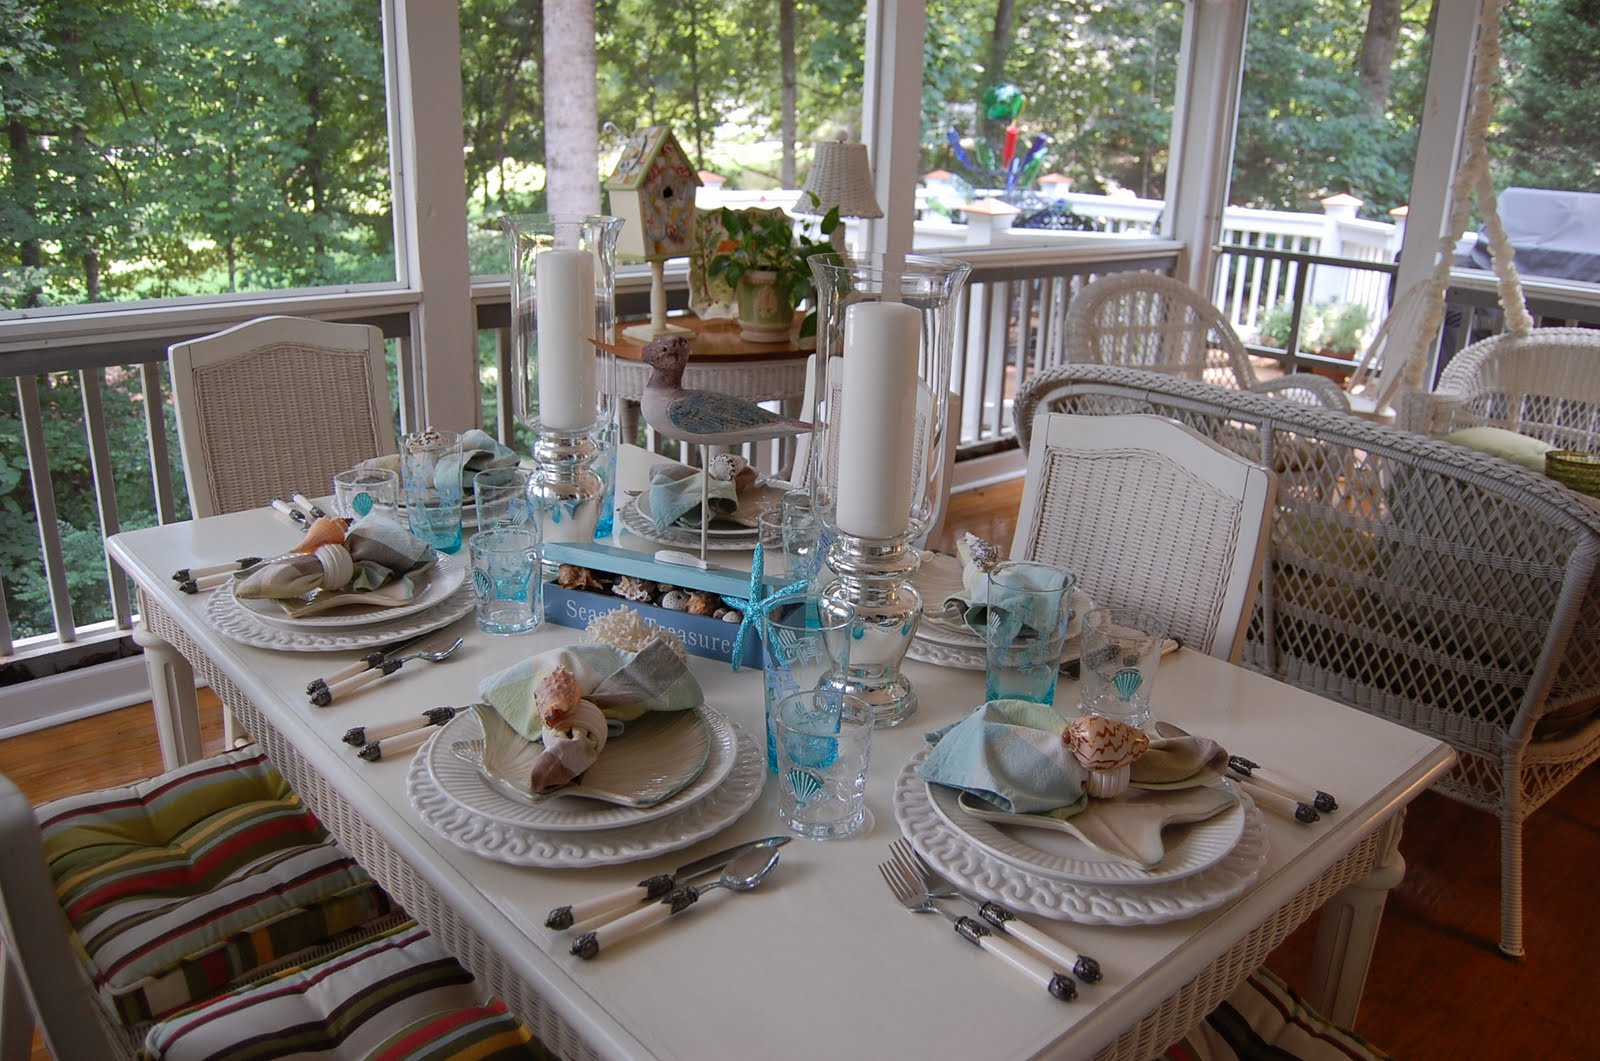 & Beach Themed Table Setting